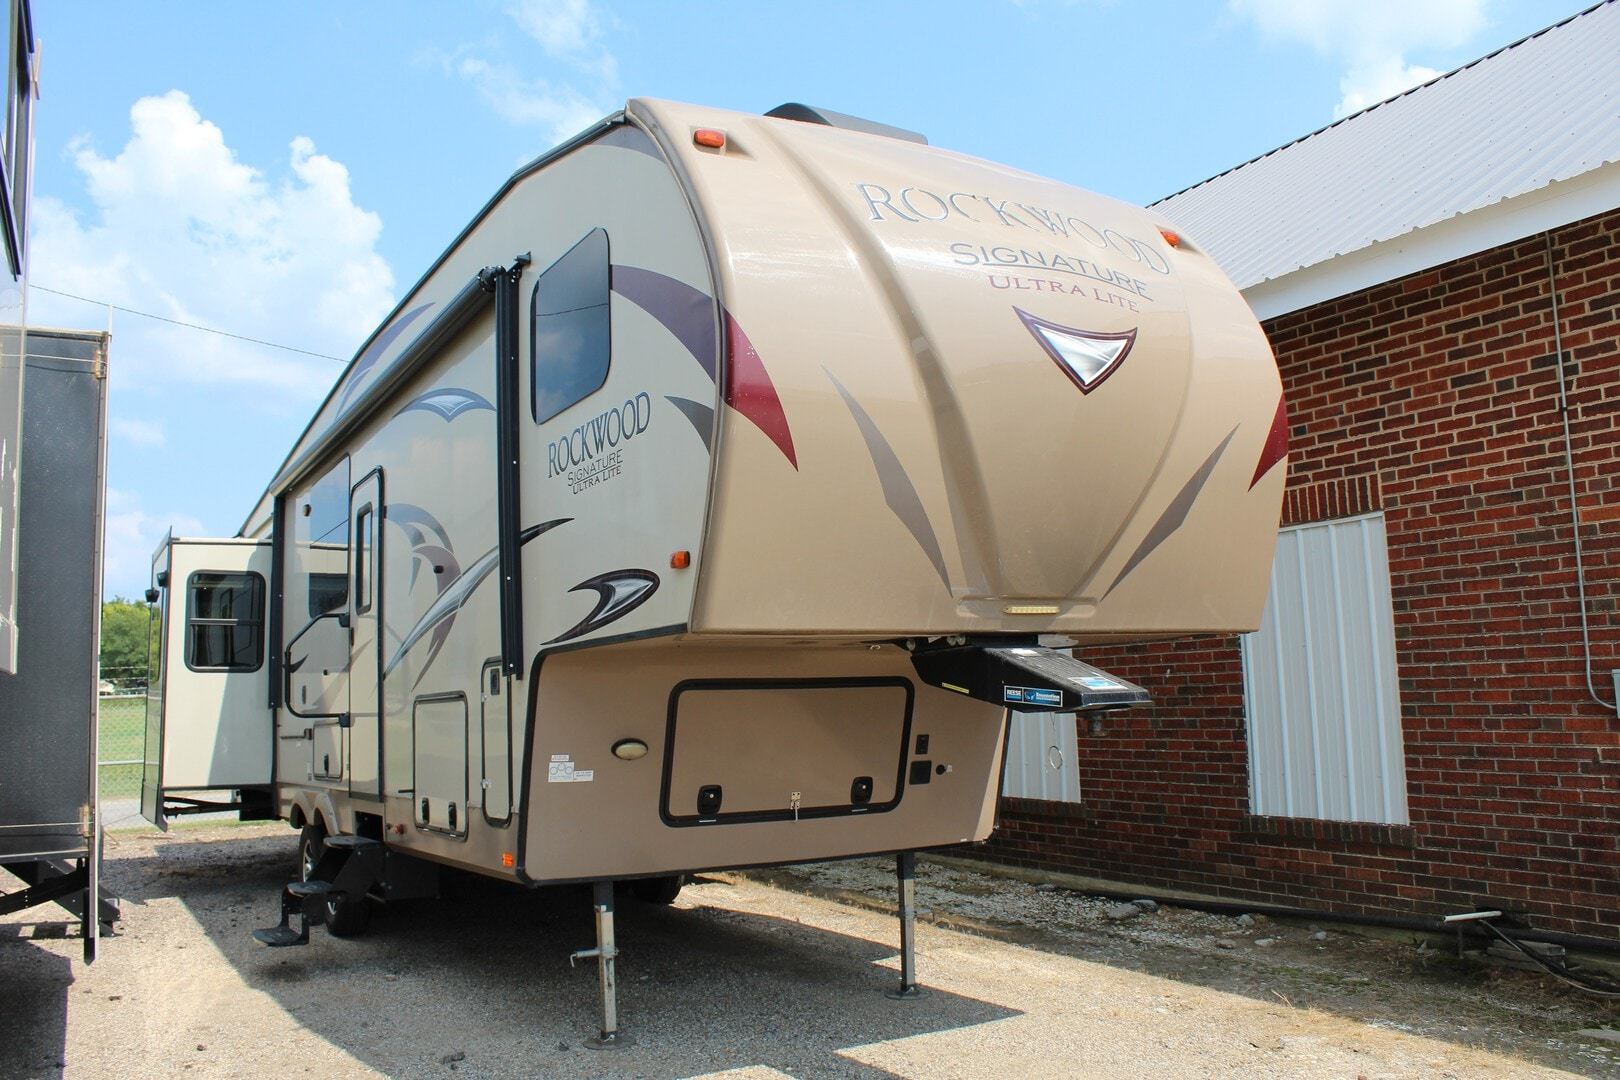 Used, 2018, Forest River, Rockwood Signature Ultra-Lite 8298WS, Fifth Wheels